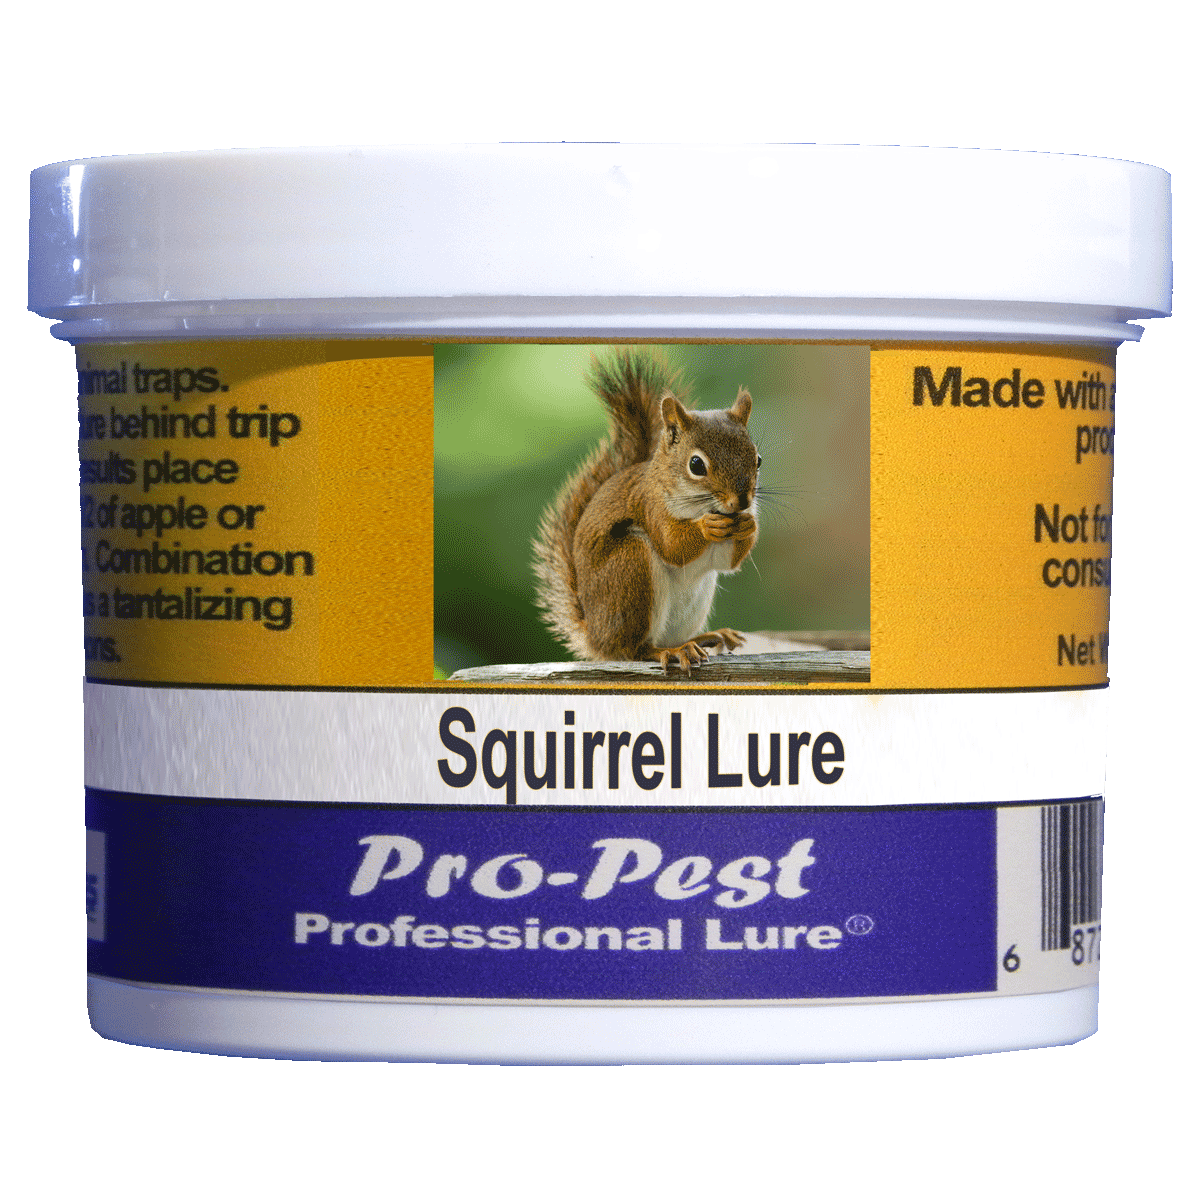 Pro Pest Squirrel Lure Prof 32cc Syringes 18 10ct J F Oakes Pro-pest Professional Lures | J.f. Oakes